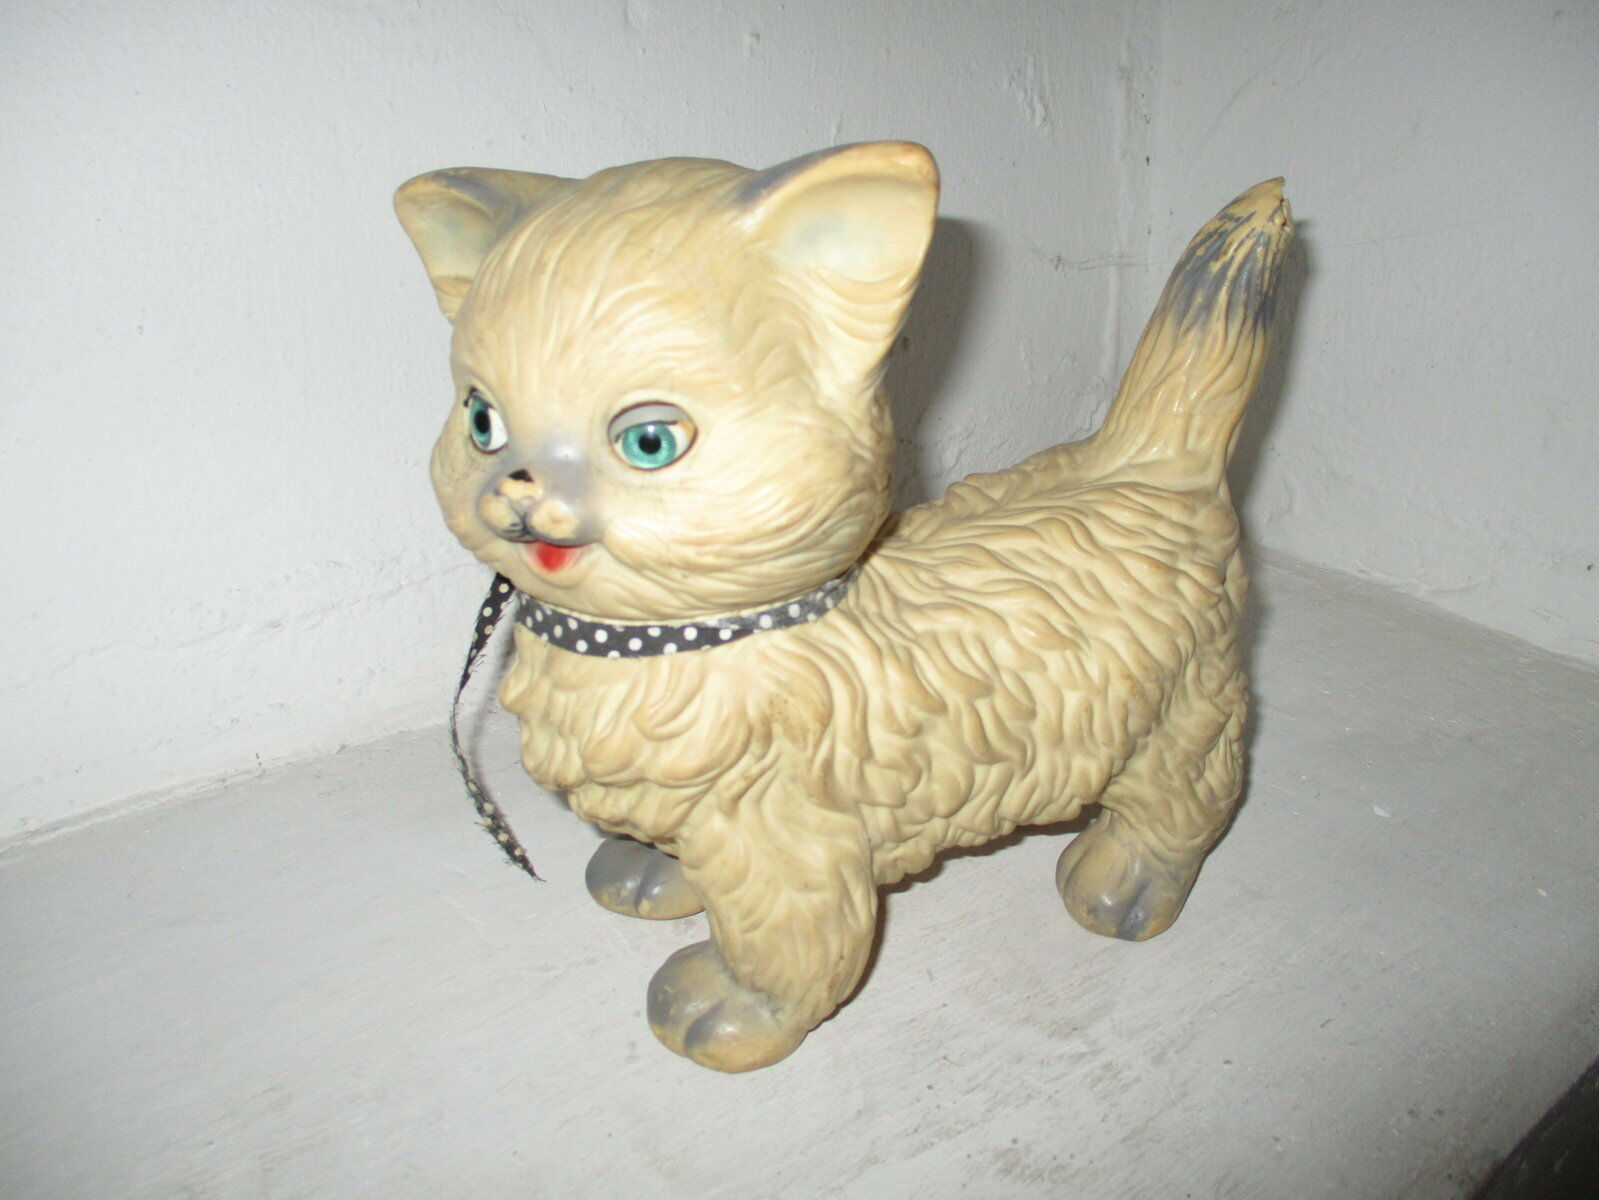 GATO DE JUGUETE DE LOS AÑOS 50   CAT TOY OF THE 50s